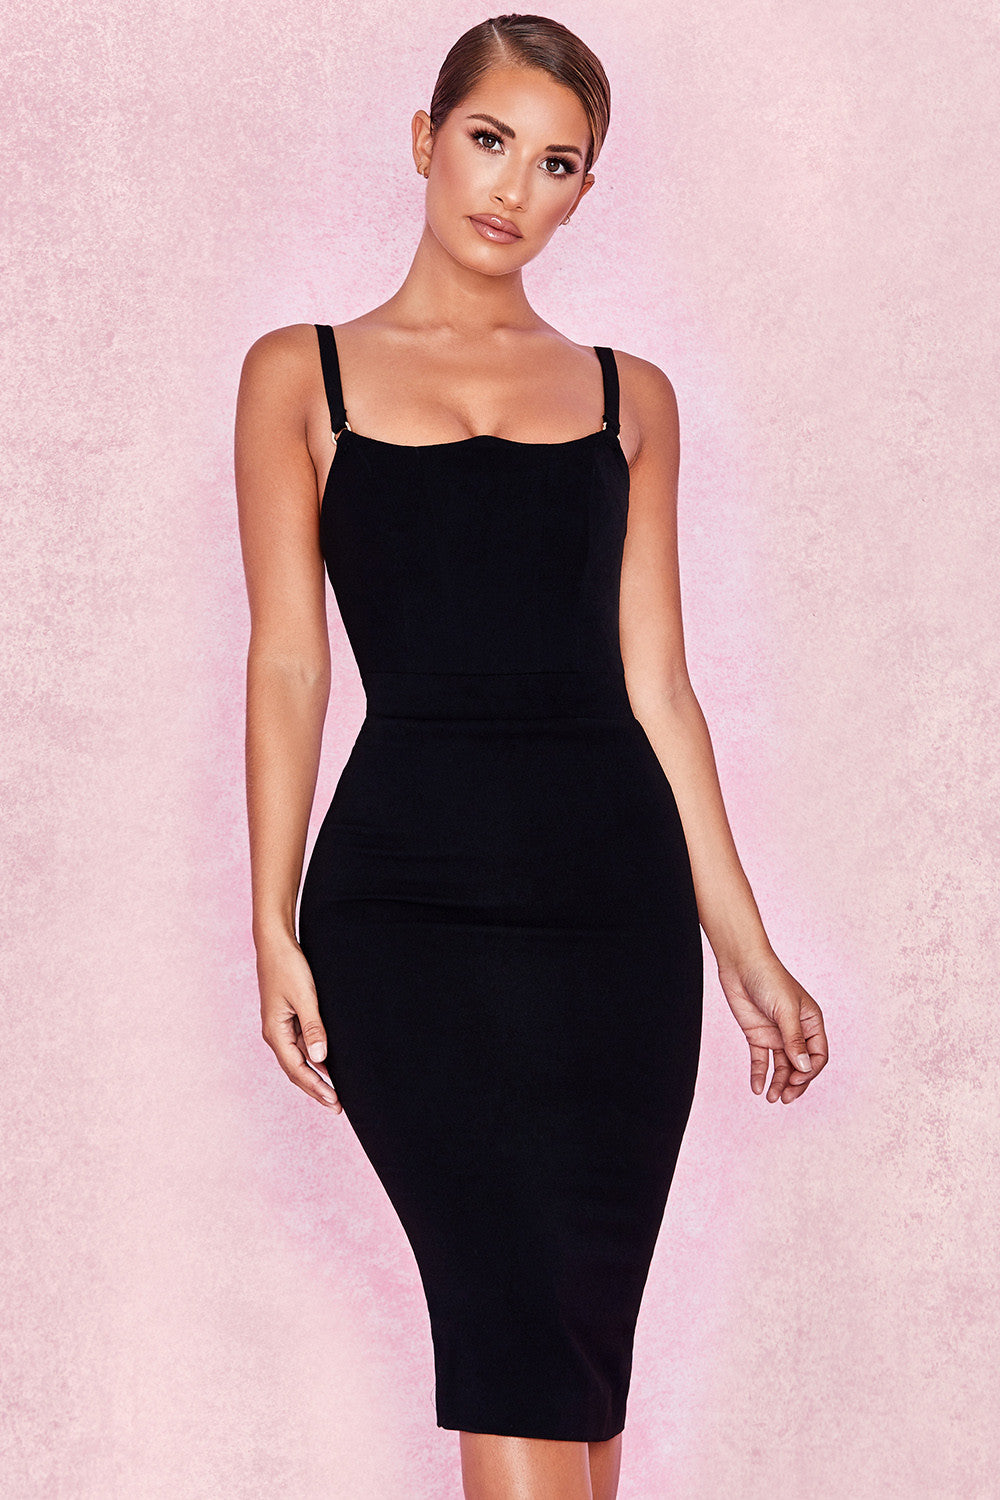 Pavlina Black Midi Dress